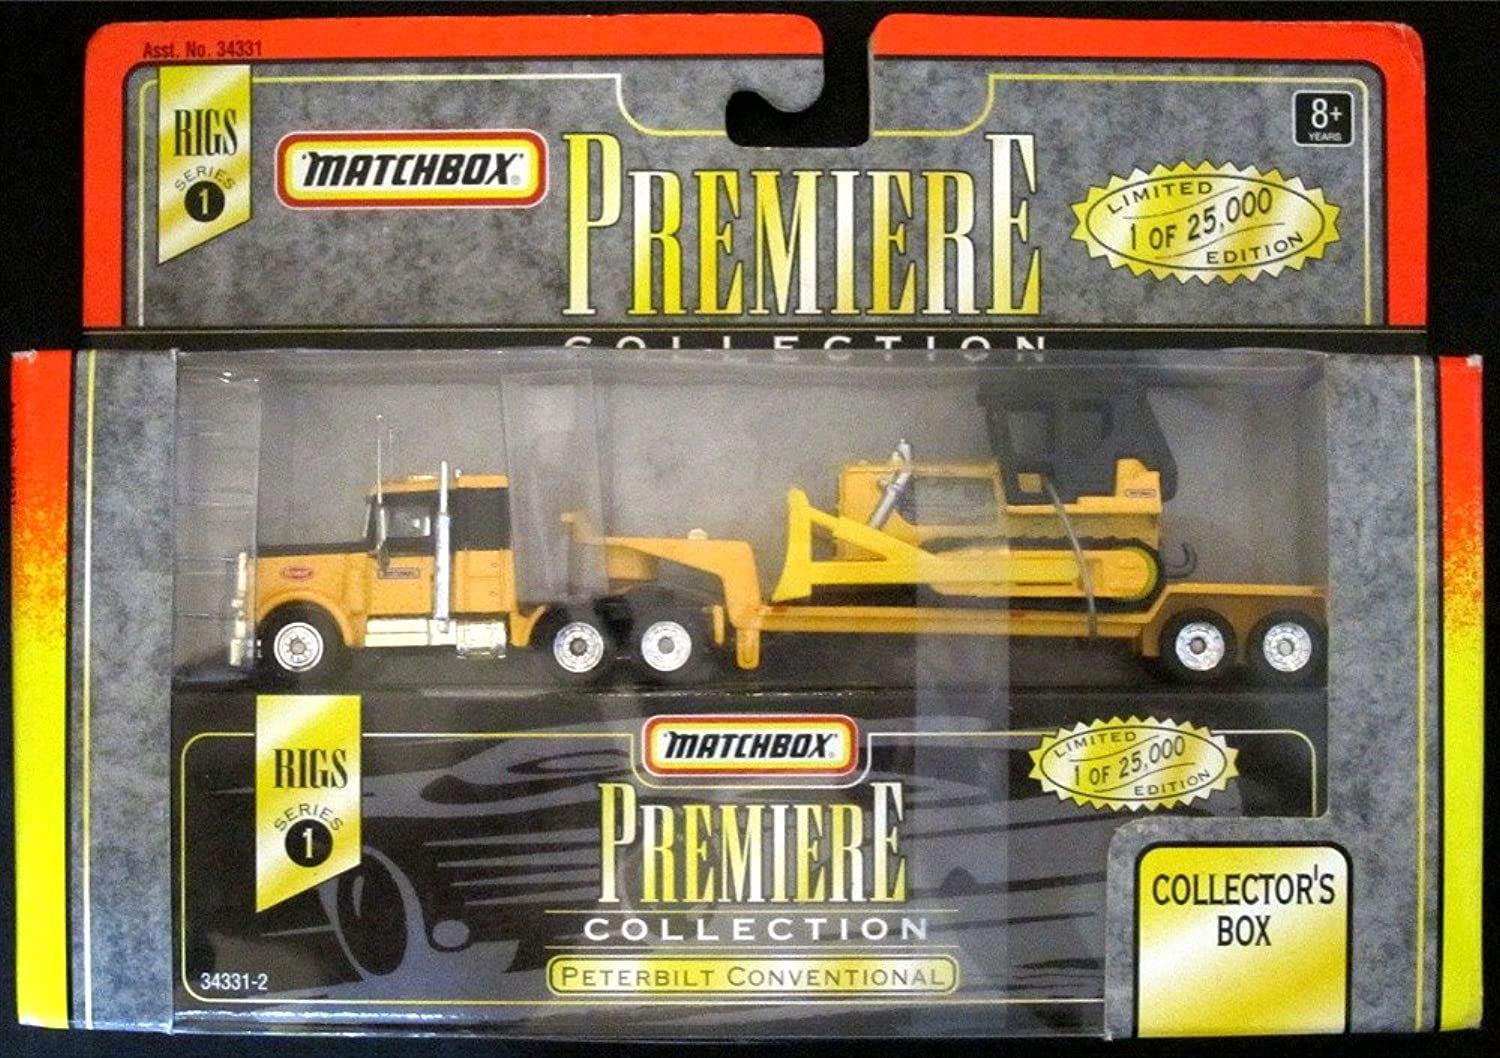 Matchbox Premiere Collection Rigs of the American Highway Collection Trucks(15cm Series)